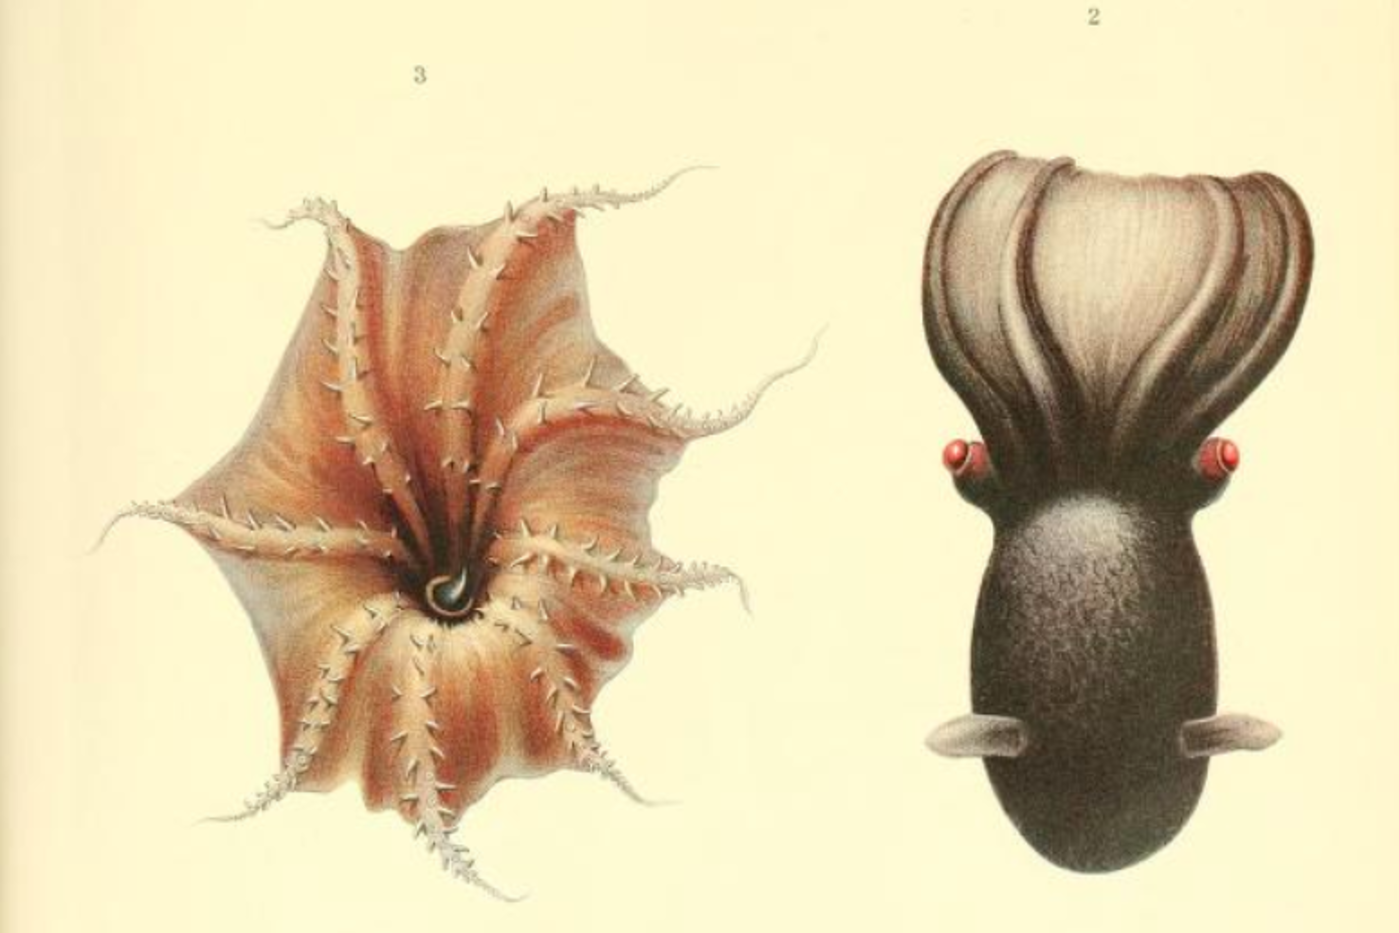 Illustration of the pinkish arms and web of a vampire squid, next to the black exterior. The vampire squid is shown with red eyes and two fins off the side of its head.